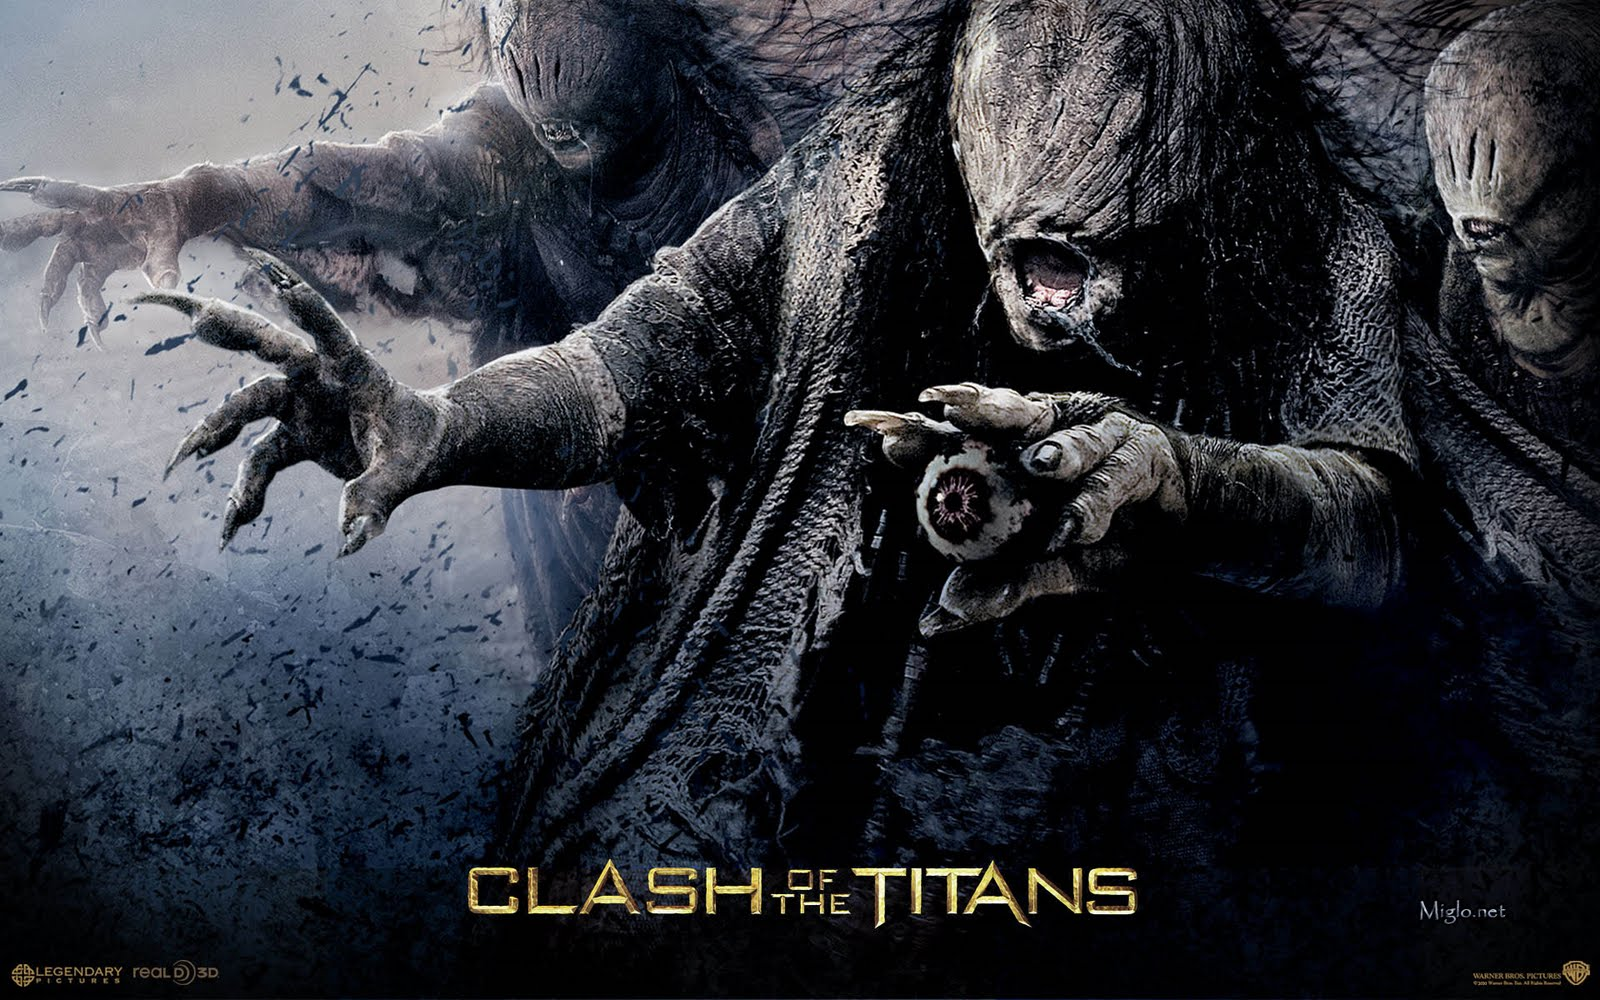 http://1.bp.blogspot.com/_V6TVDECge74/S8dtVt593CI/AAAAAAAAAYk/N8MCDy-UxUo/s1600/zombies-from-clash-of-the-titans-wallpaper-HD-movie.jpg